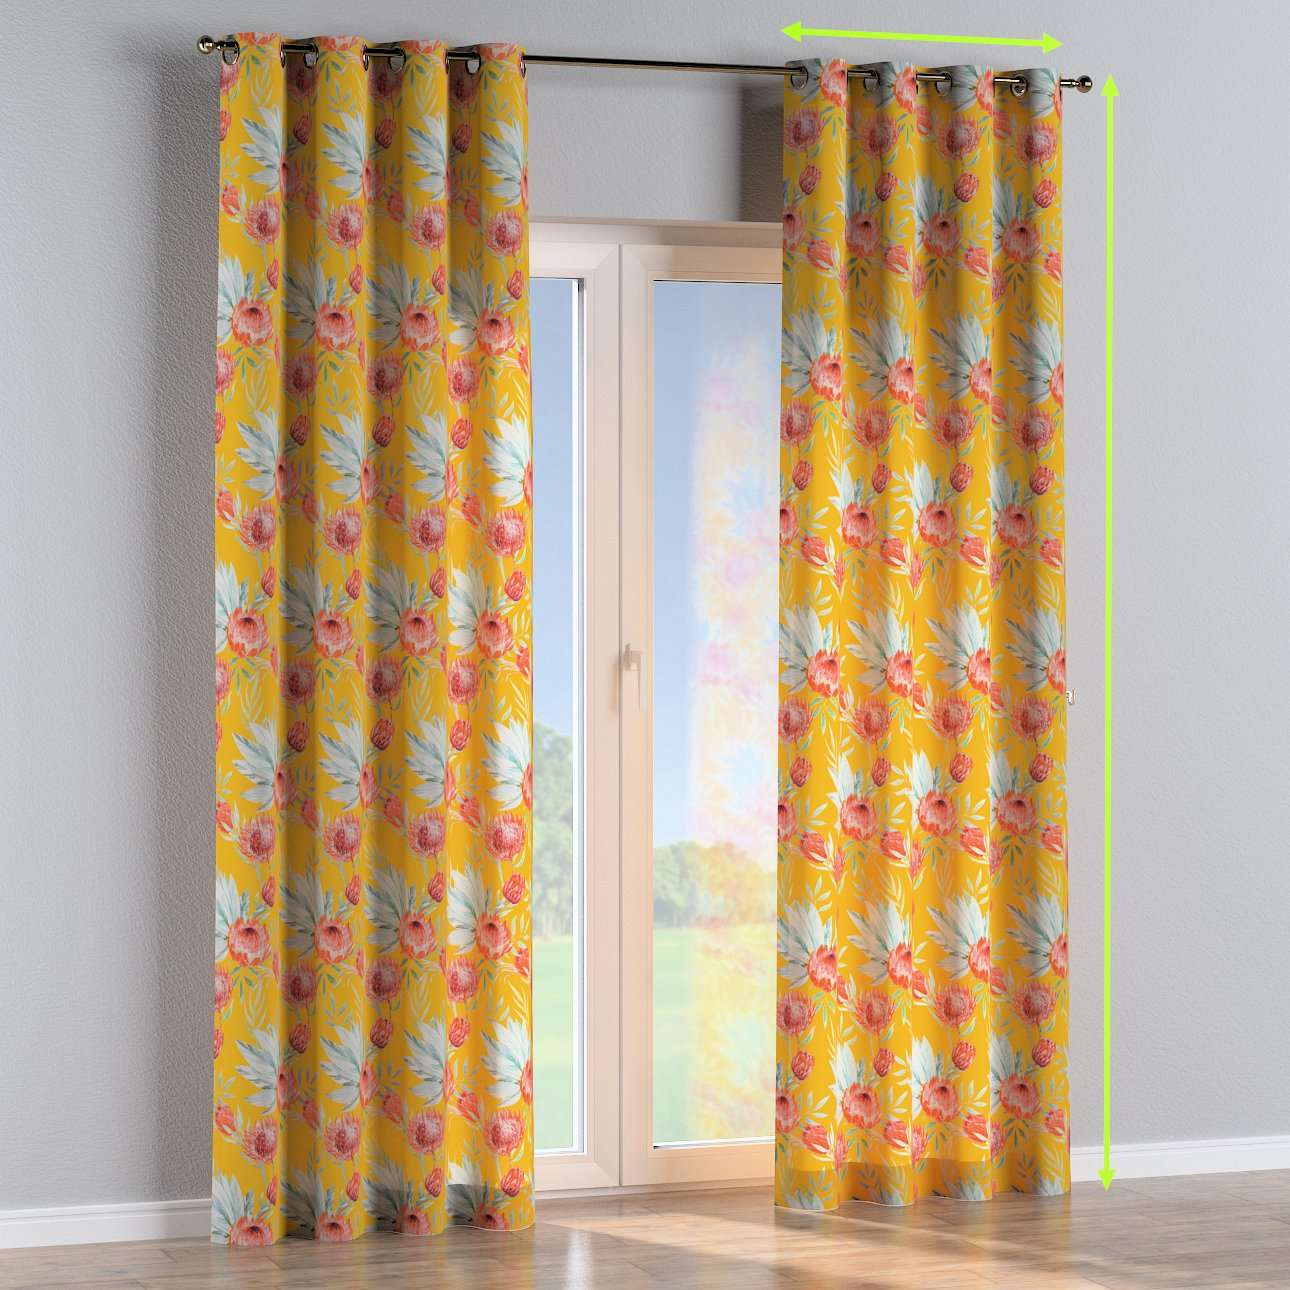 Eyelet curtains in collection New Art, fabric: 141-58